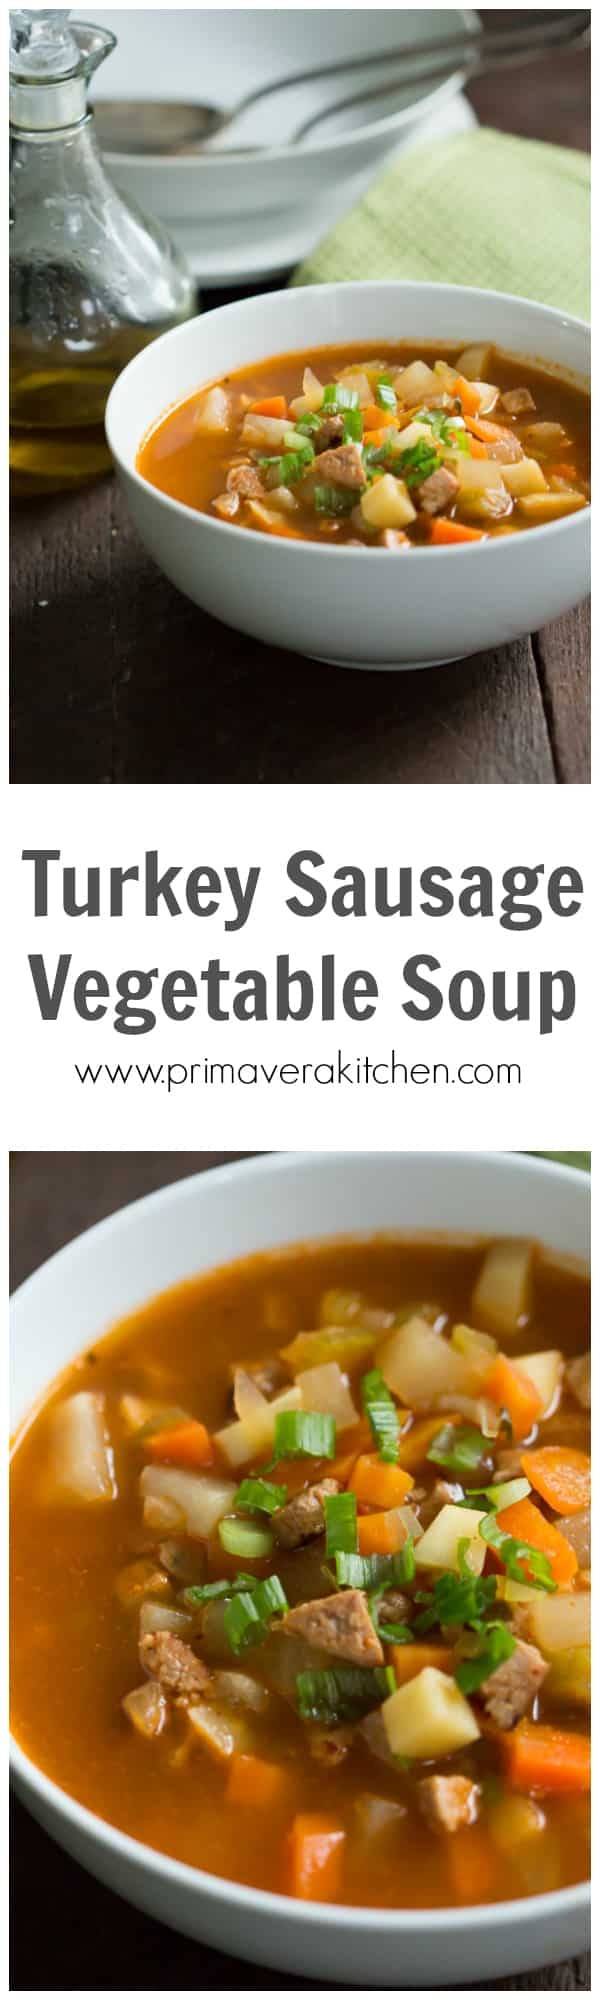 turkey-sausage-vegetable-soup - Enjoy this filling Turkey Sausage Vegetable Soup that is packed with the flavors of turkey sausage, tomatoes, parsnip and turnip. This is a very satisfying soup and it'll warm you up during the cold weather.